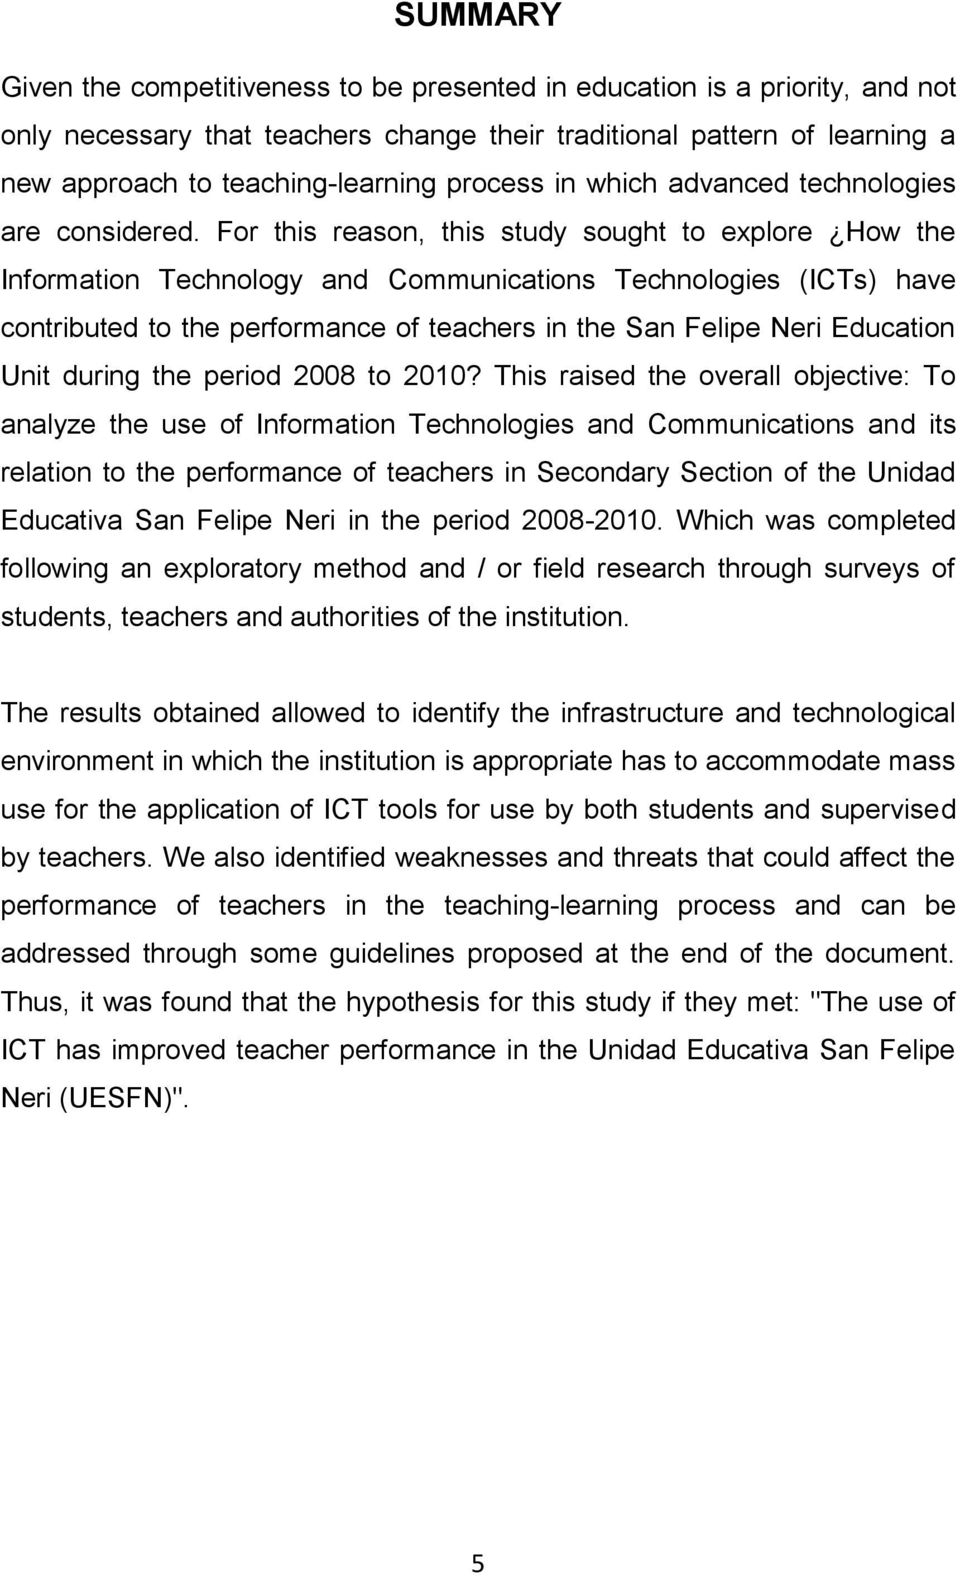 For this reason, this study sought to explore How the Information Technology and Communications Technologies (ICTs) have contributed to the performance of teachers in the San Felipe Neri Education